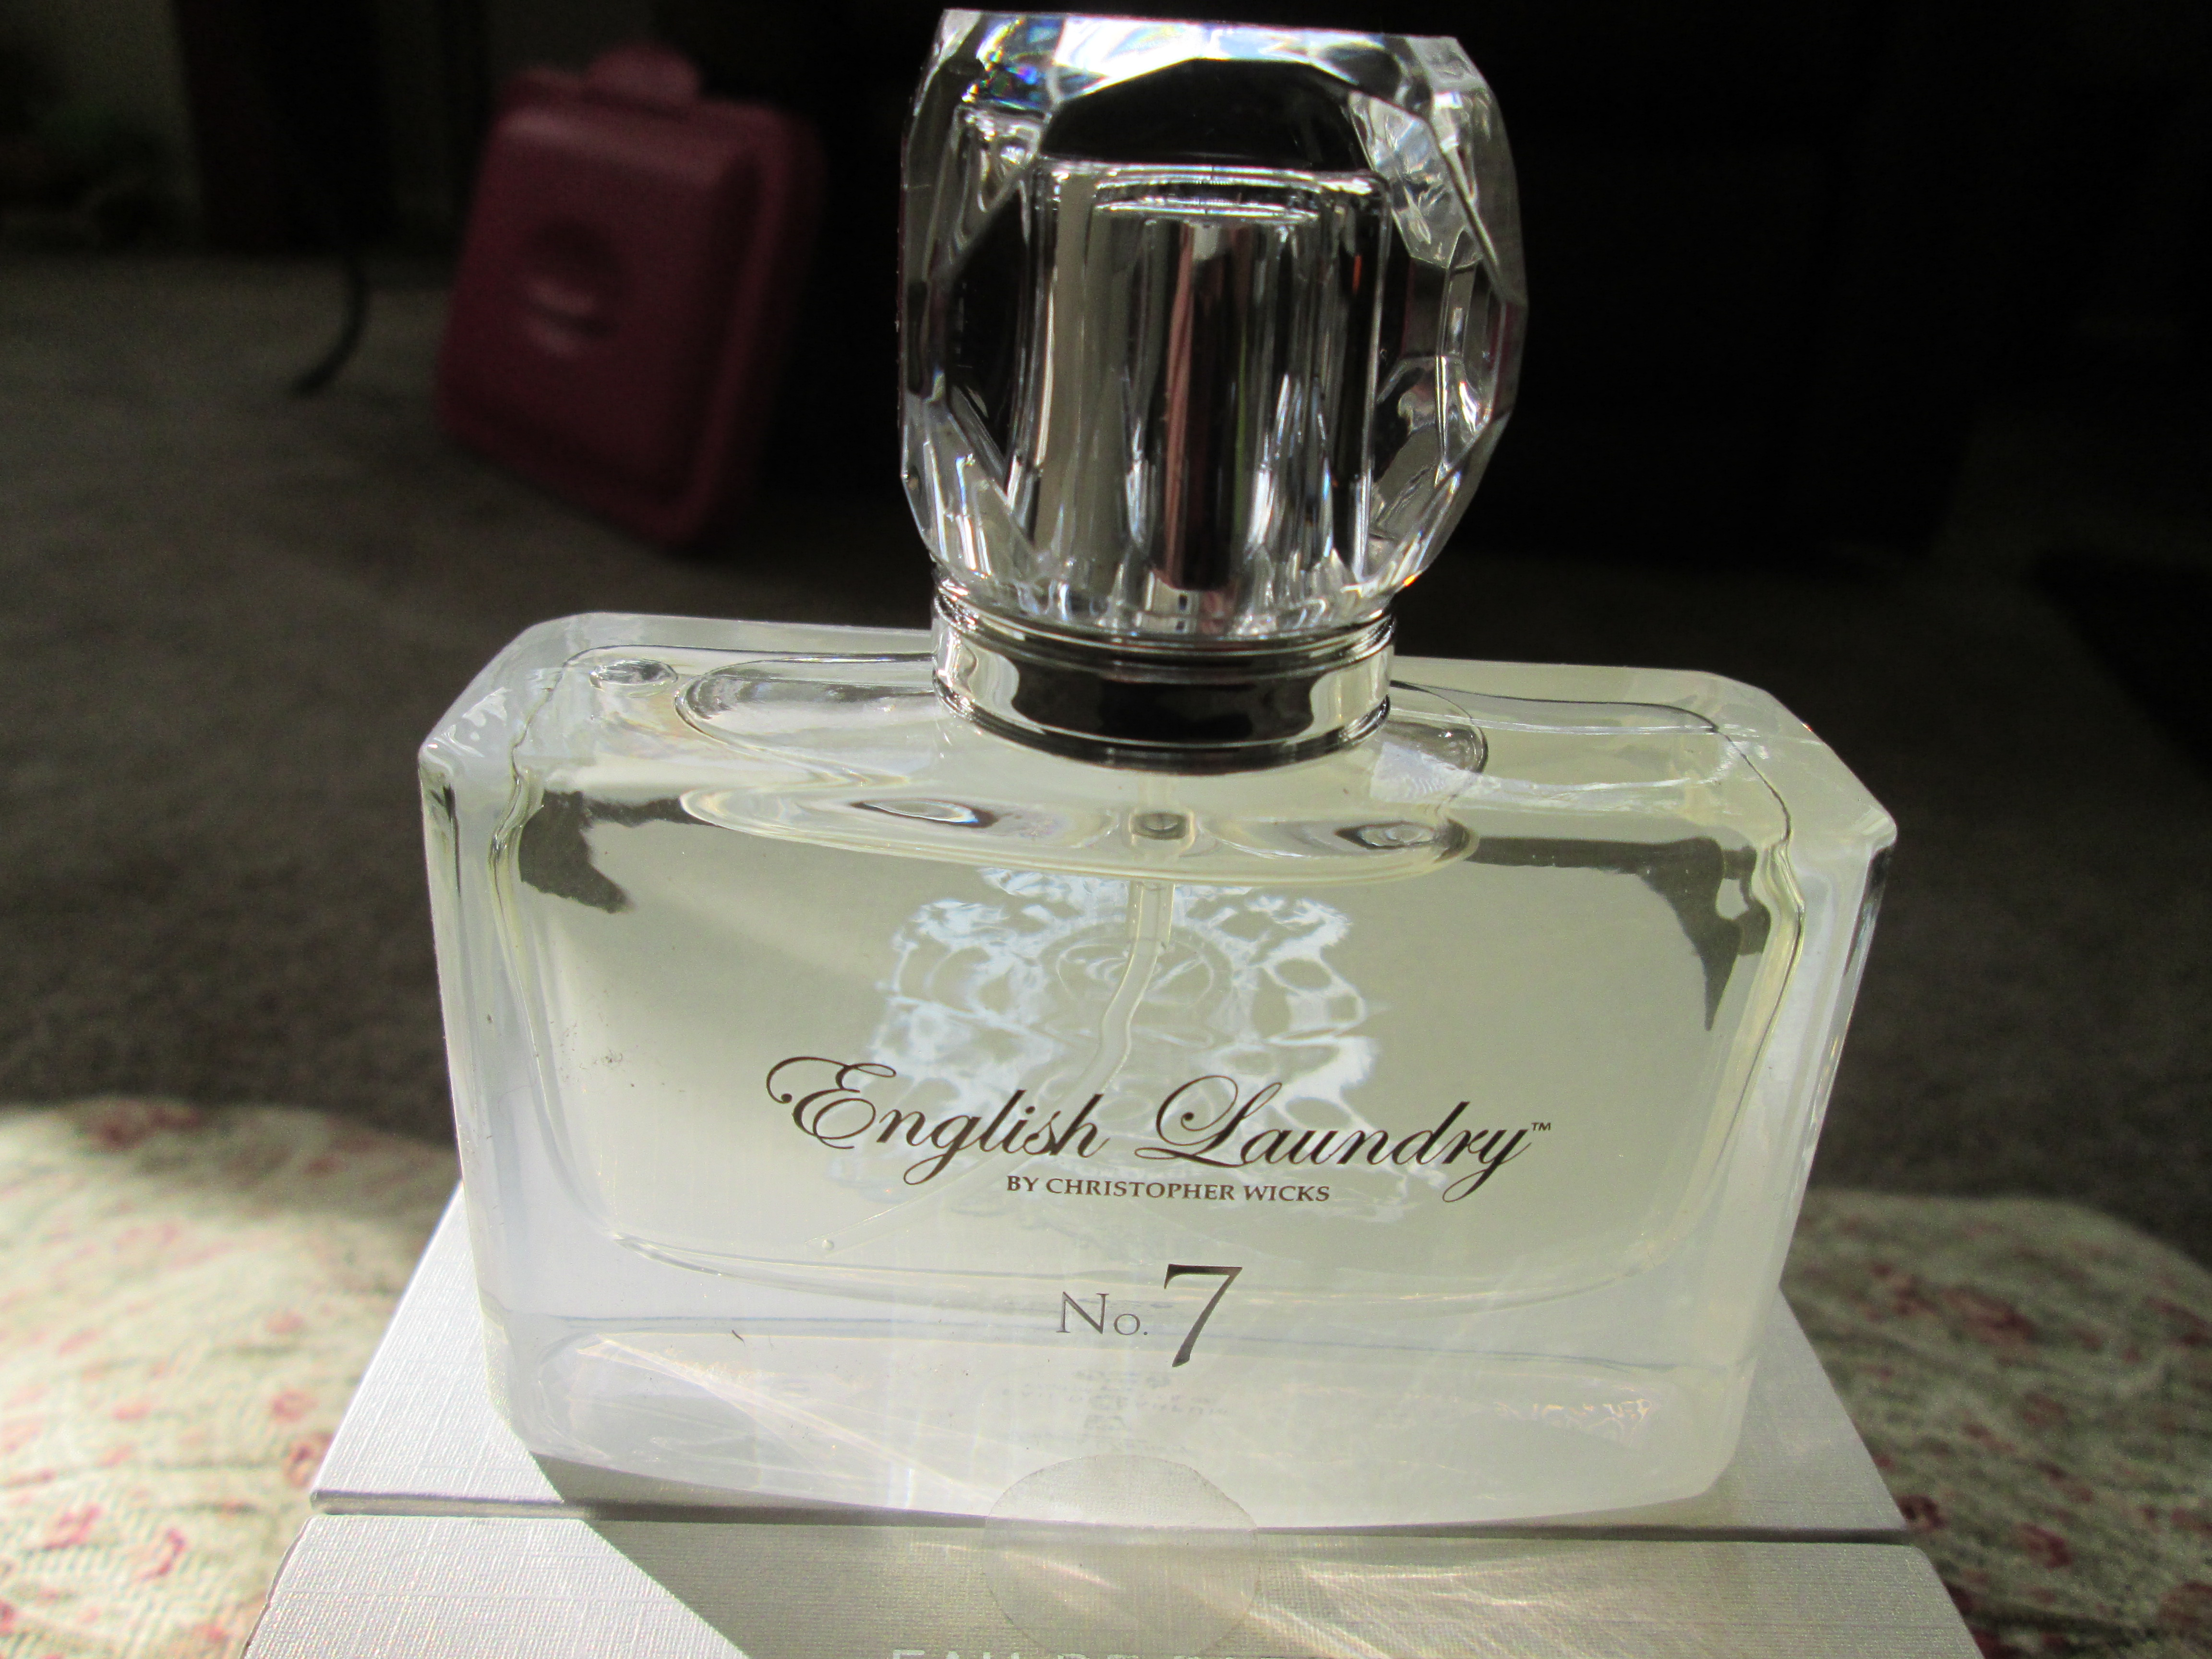 Fragrance review english laundry fragrance for English laundry perfume